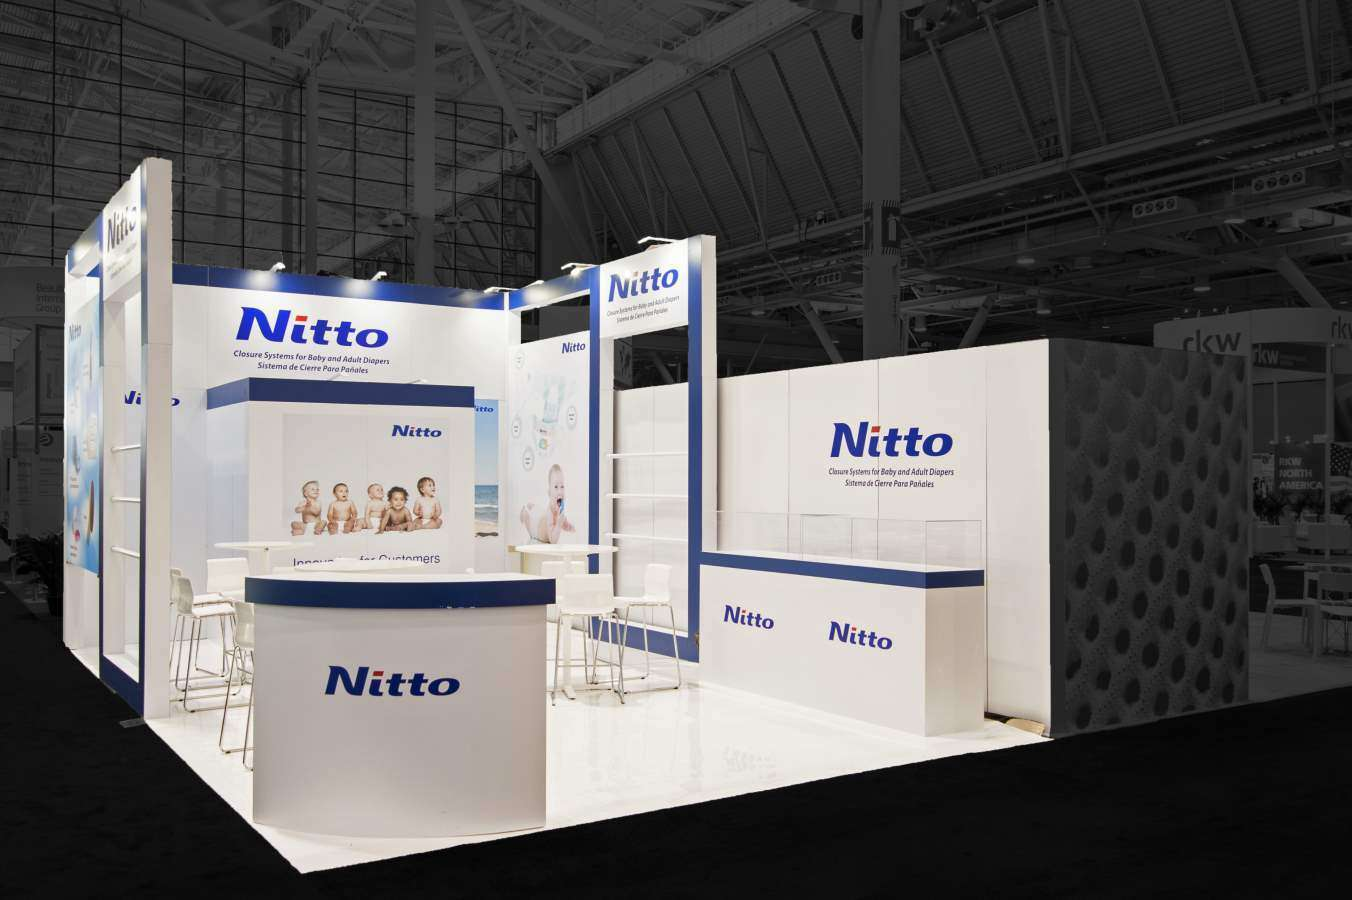 20x30 custom exhibition stand @ IDEA, Boston